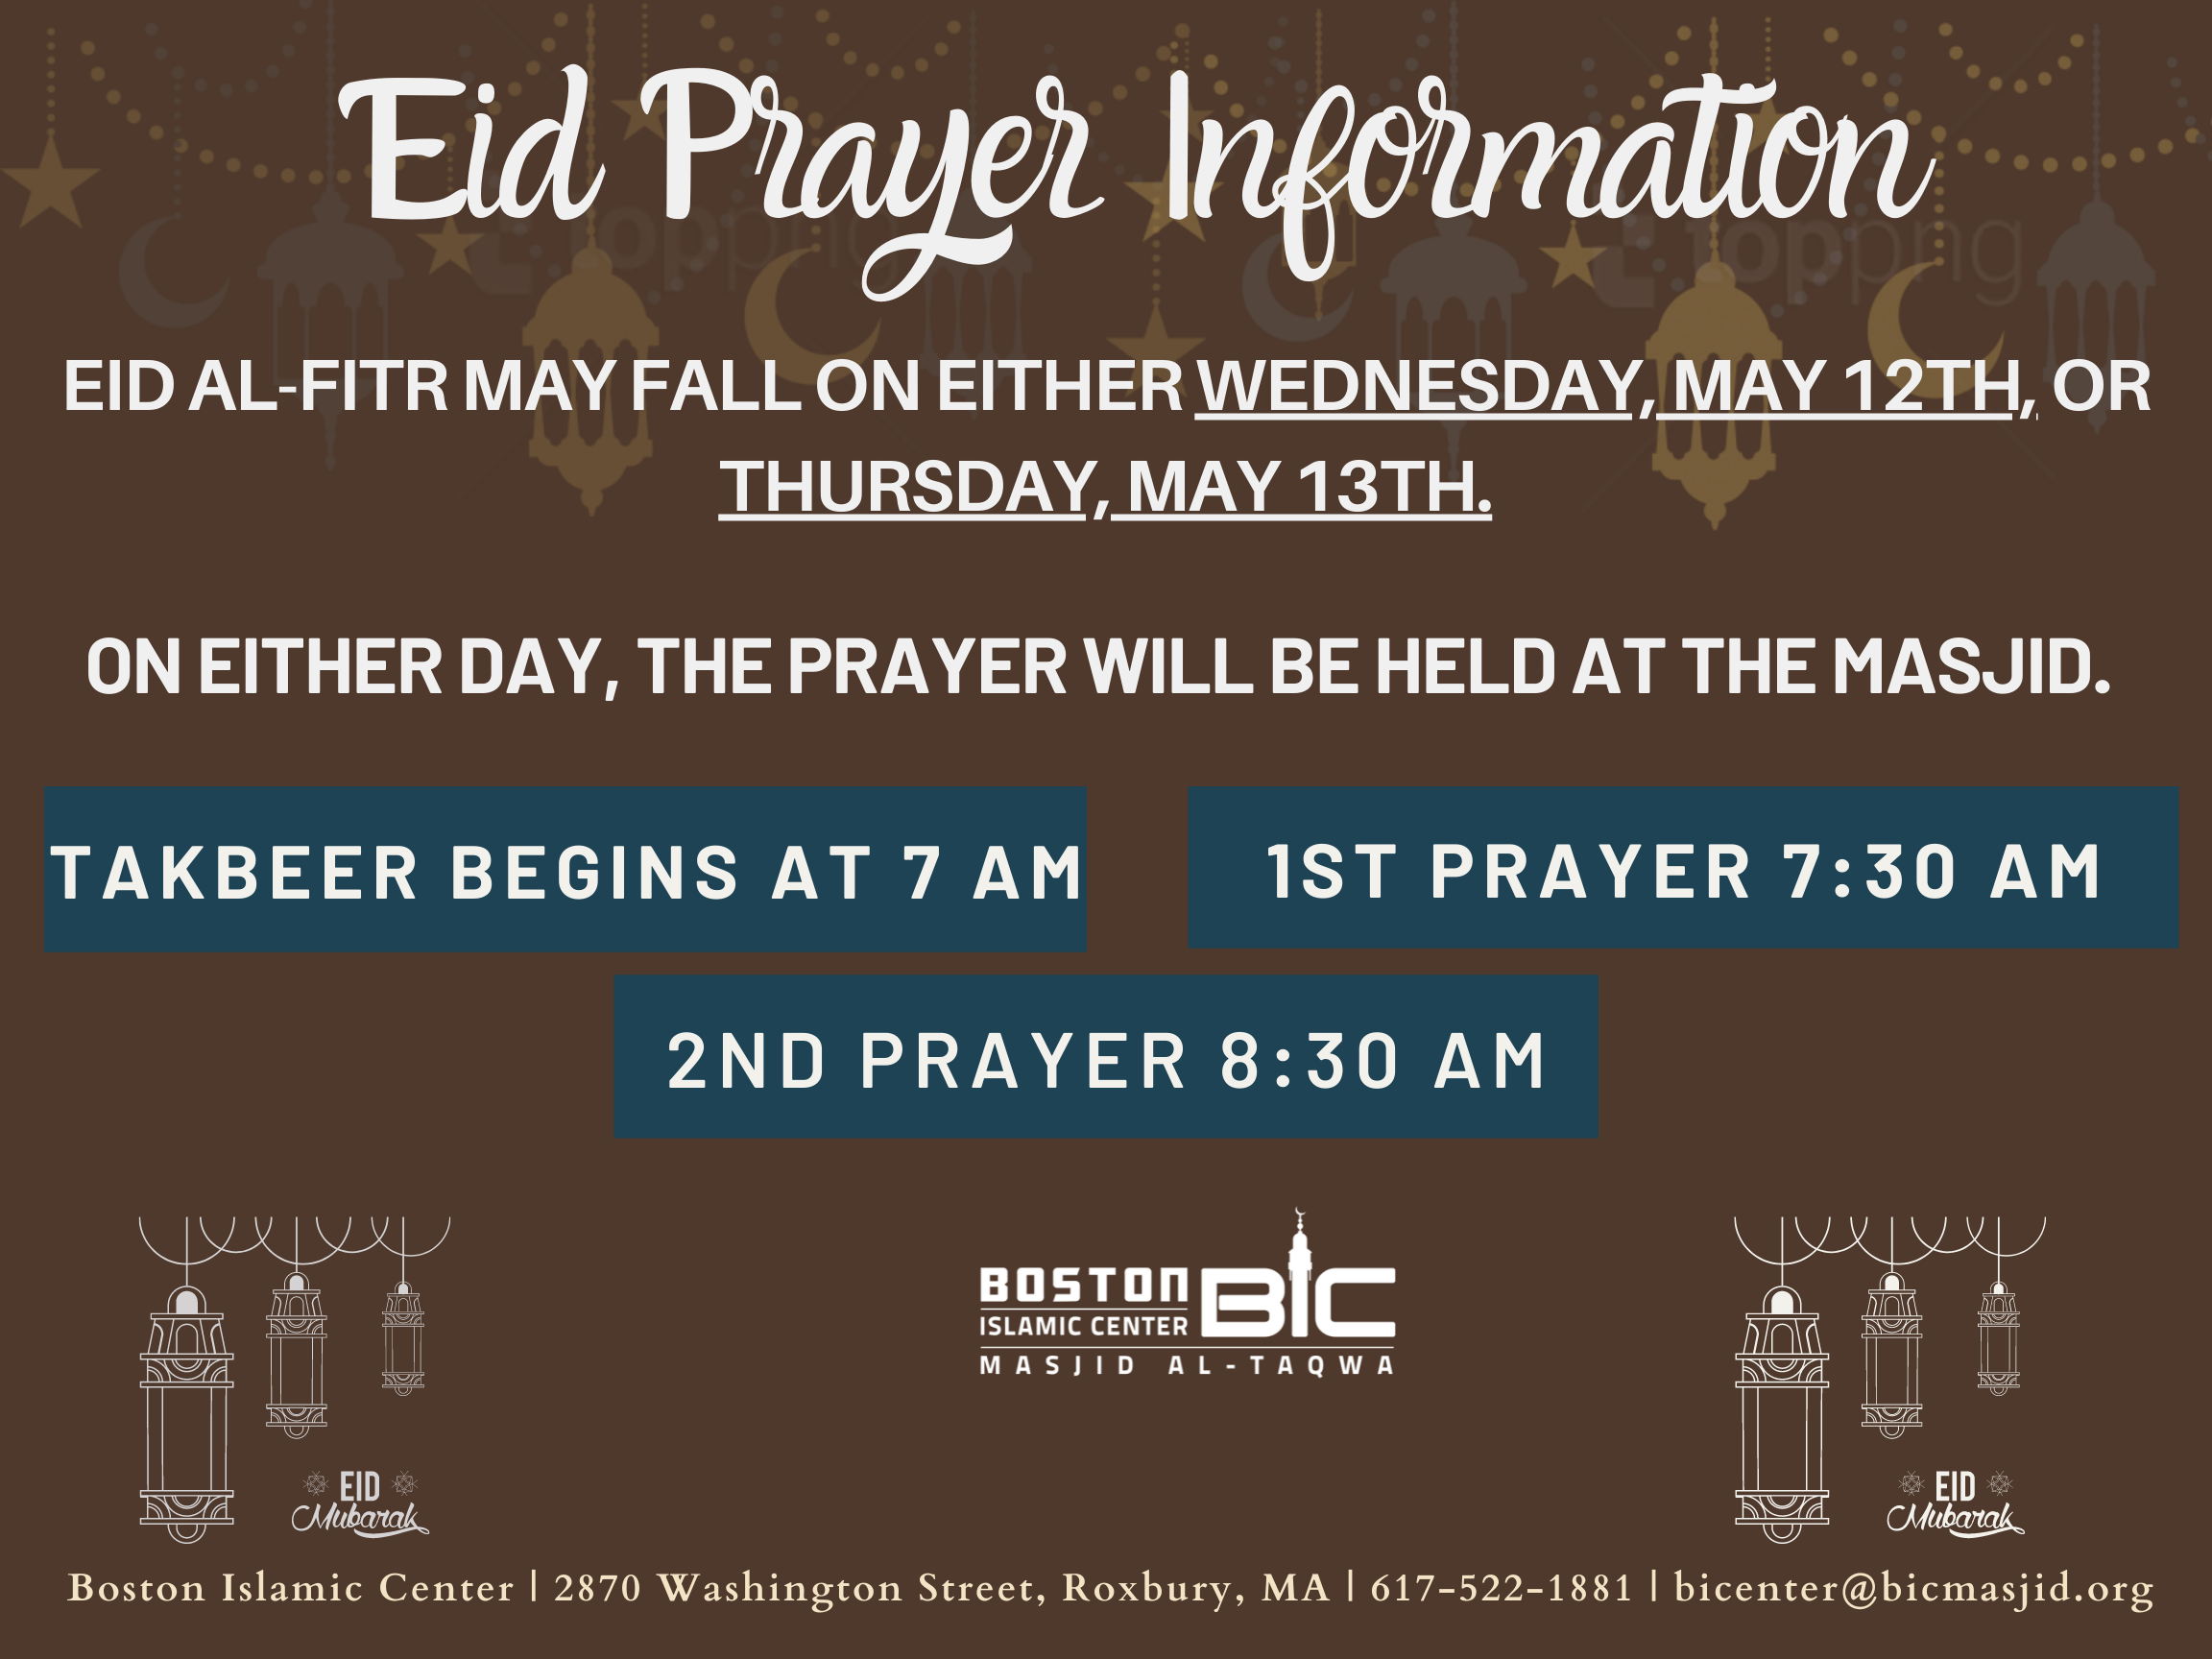 Eid al Fitr will fall on either Wednesday, May 12 or Thursday, May 13th.